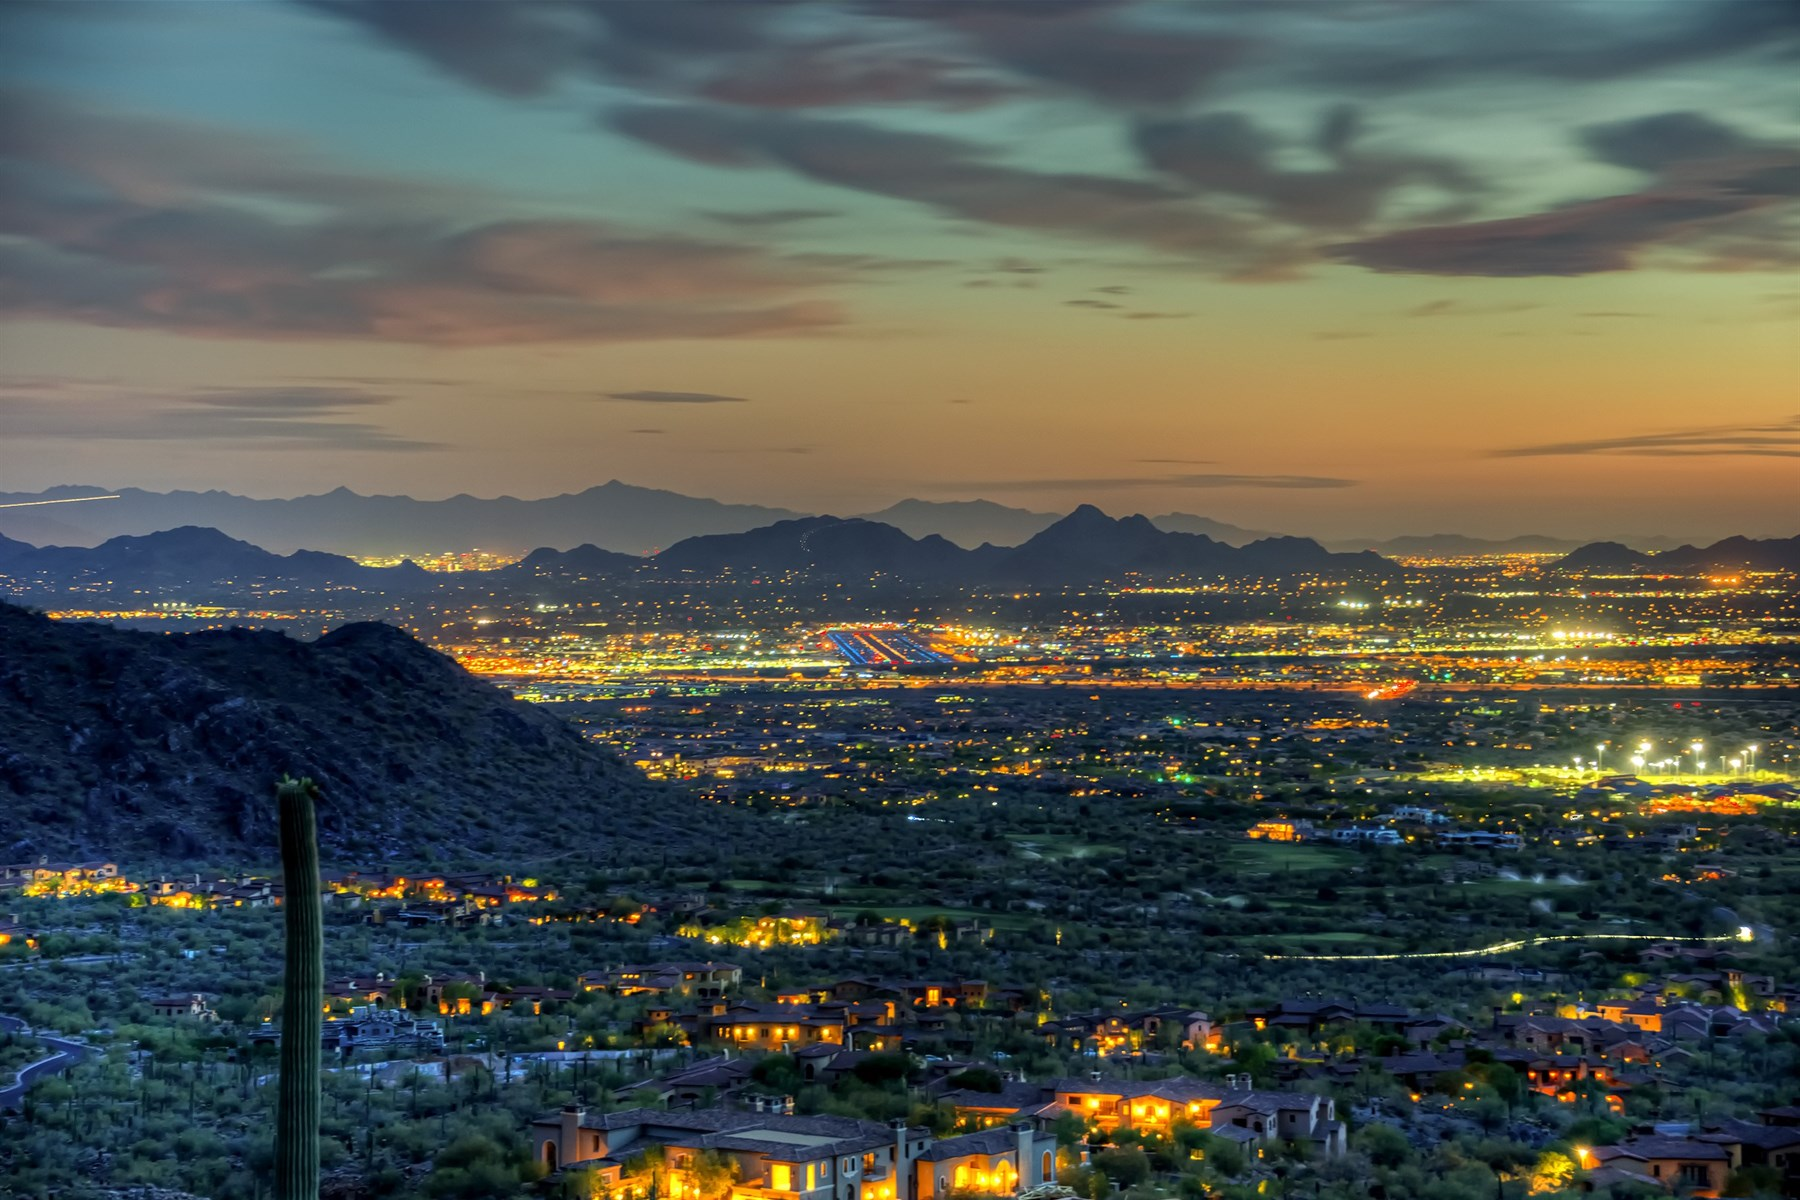 Terreno per Vendita alle ore The Most Dramatic Views In The Valley 'The Summit in Silverleaf's Upper Canyon' 11243 E Hideaway Lane #1865 Scottsdale, Arizona 85255 Stati Uniti